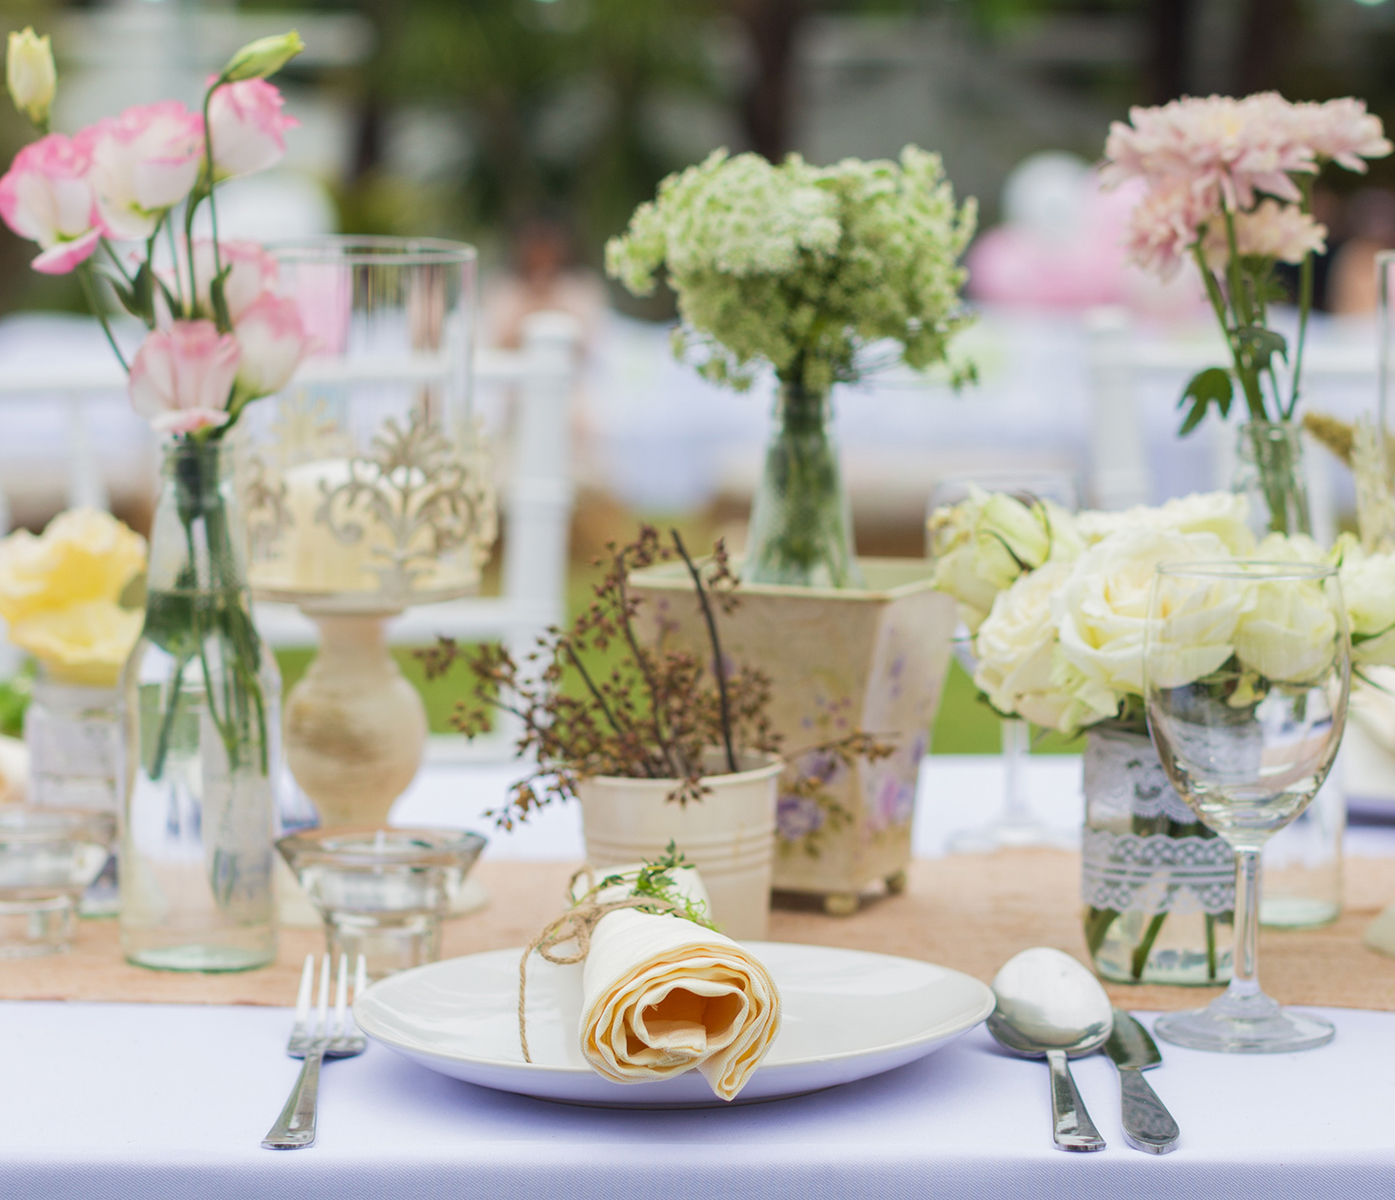 Table Setting at Garden Party